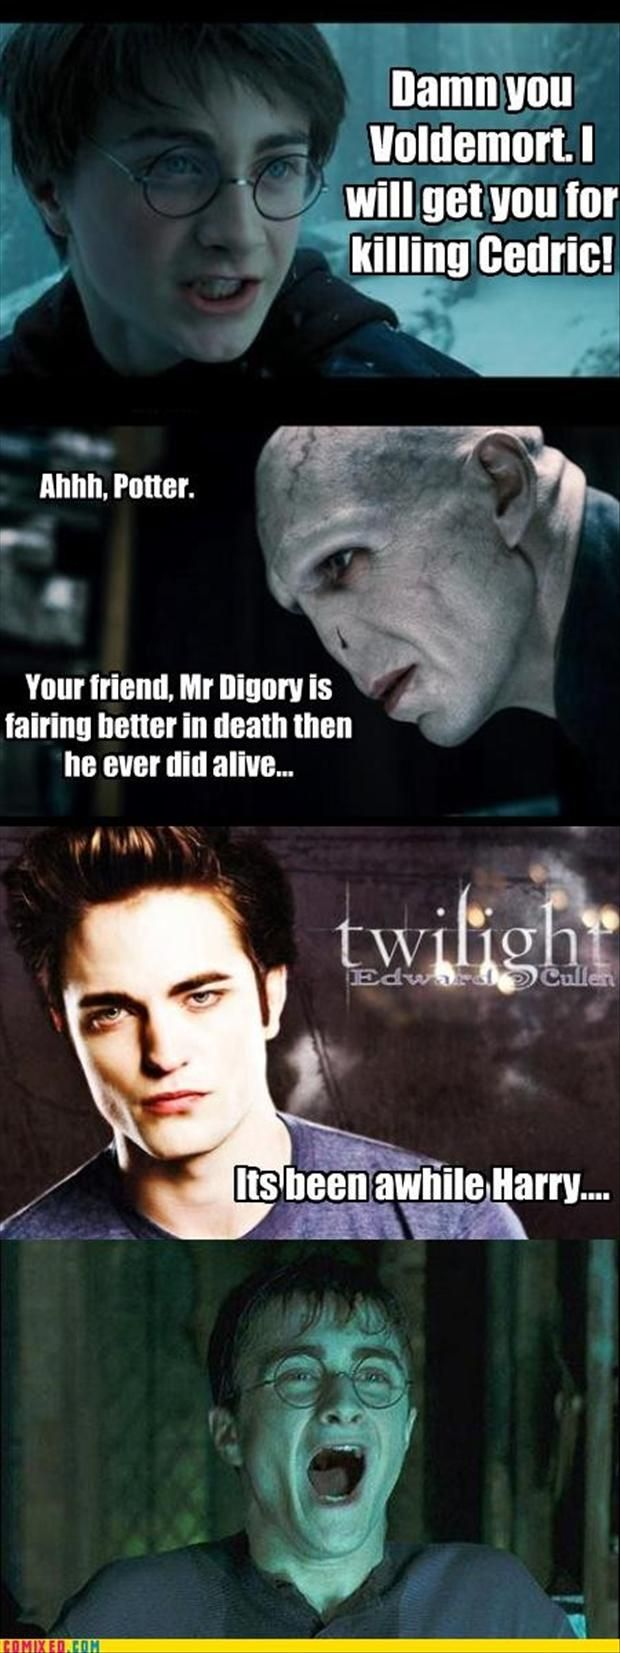 I hate how it always says Voldemort killed Diggory when Peter Pettigrew did<<<True, but this is still hilarious lol